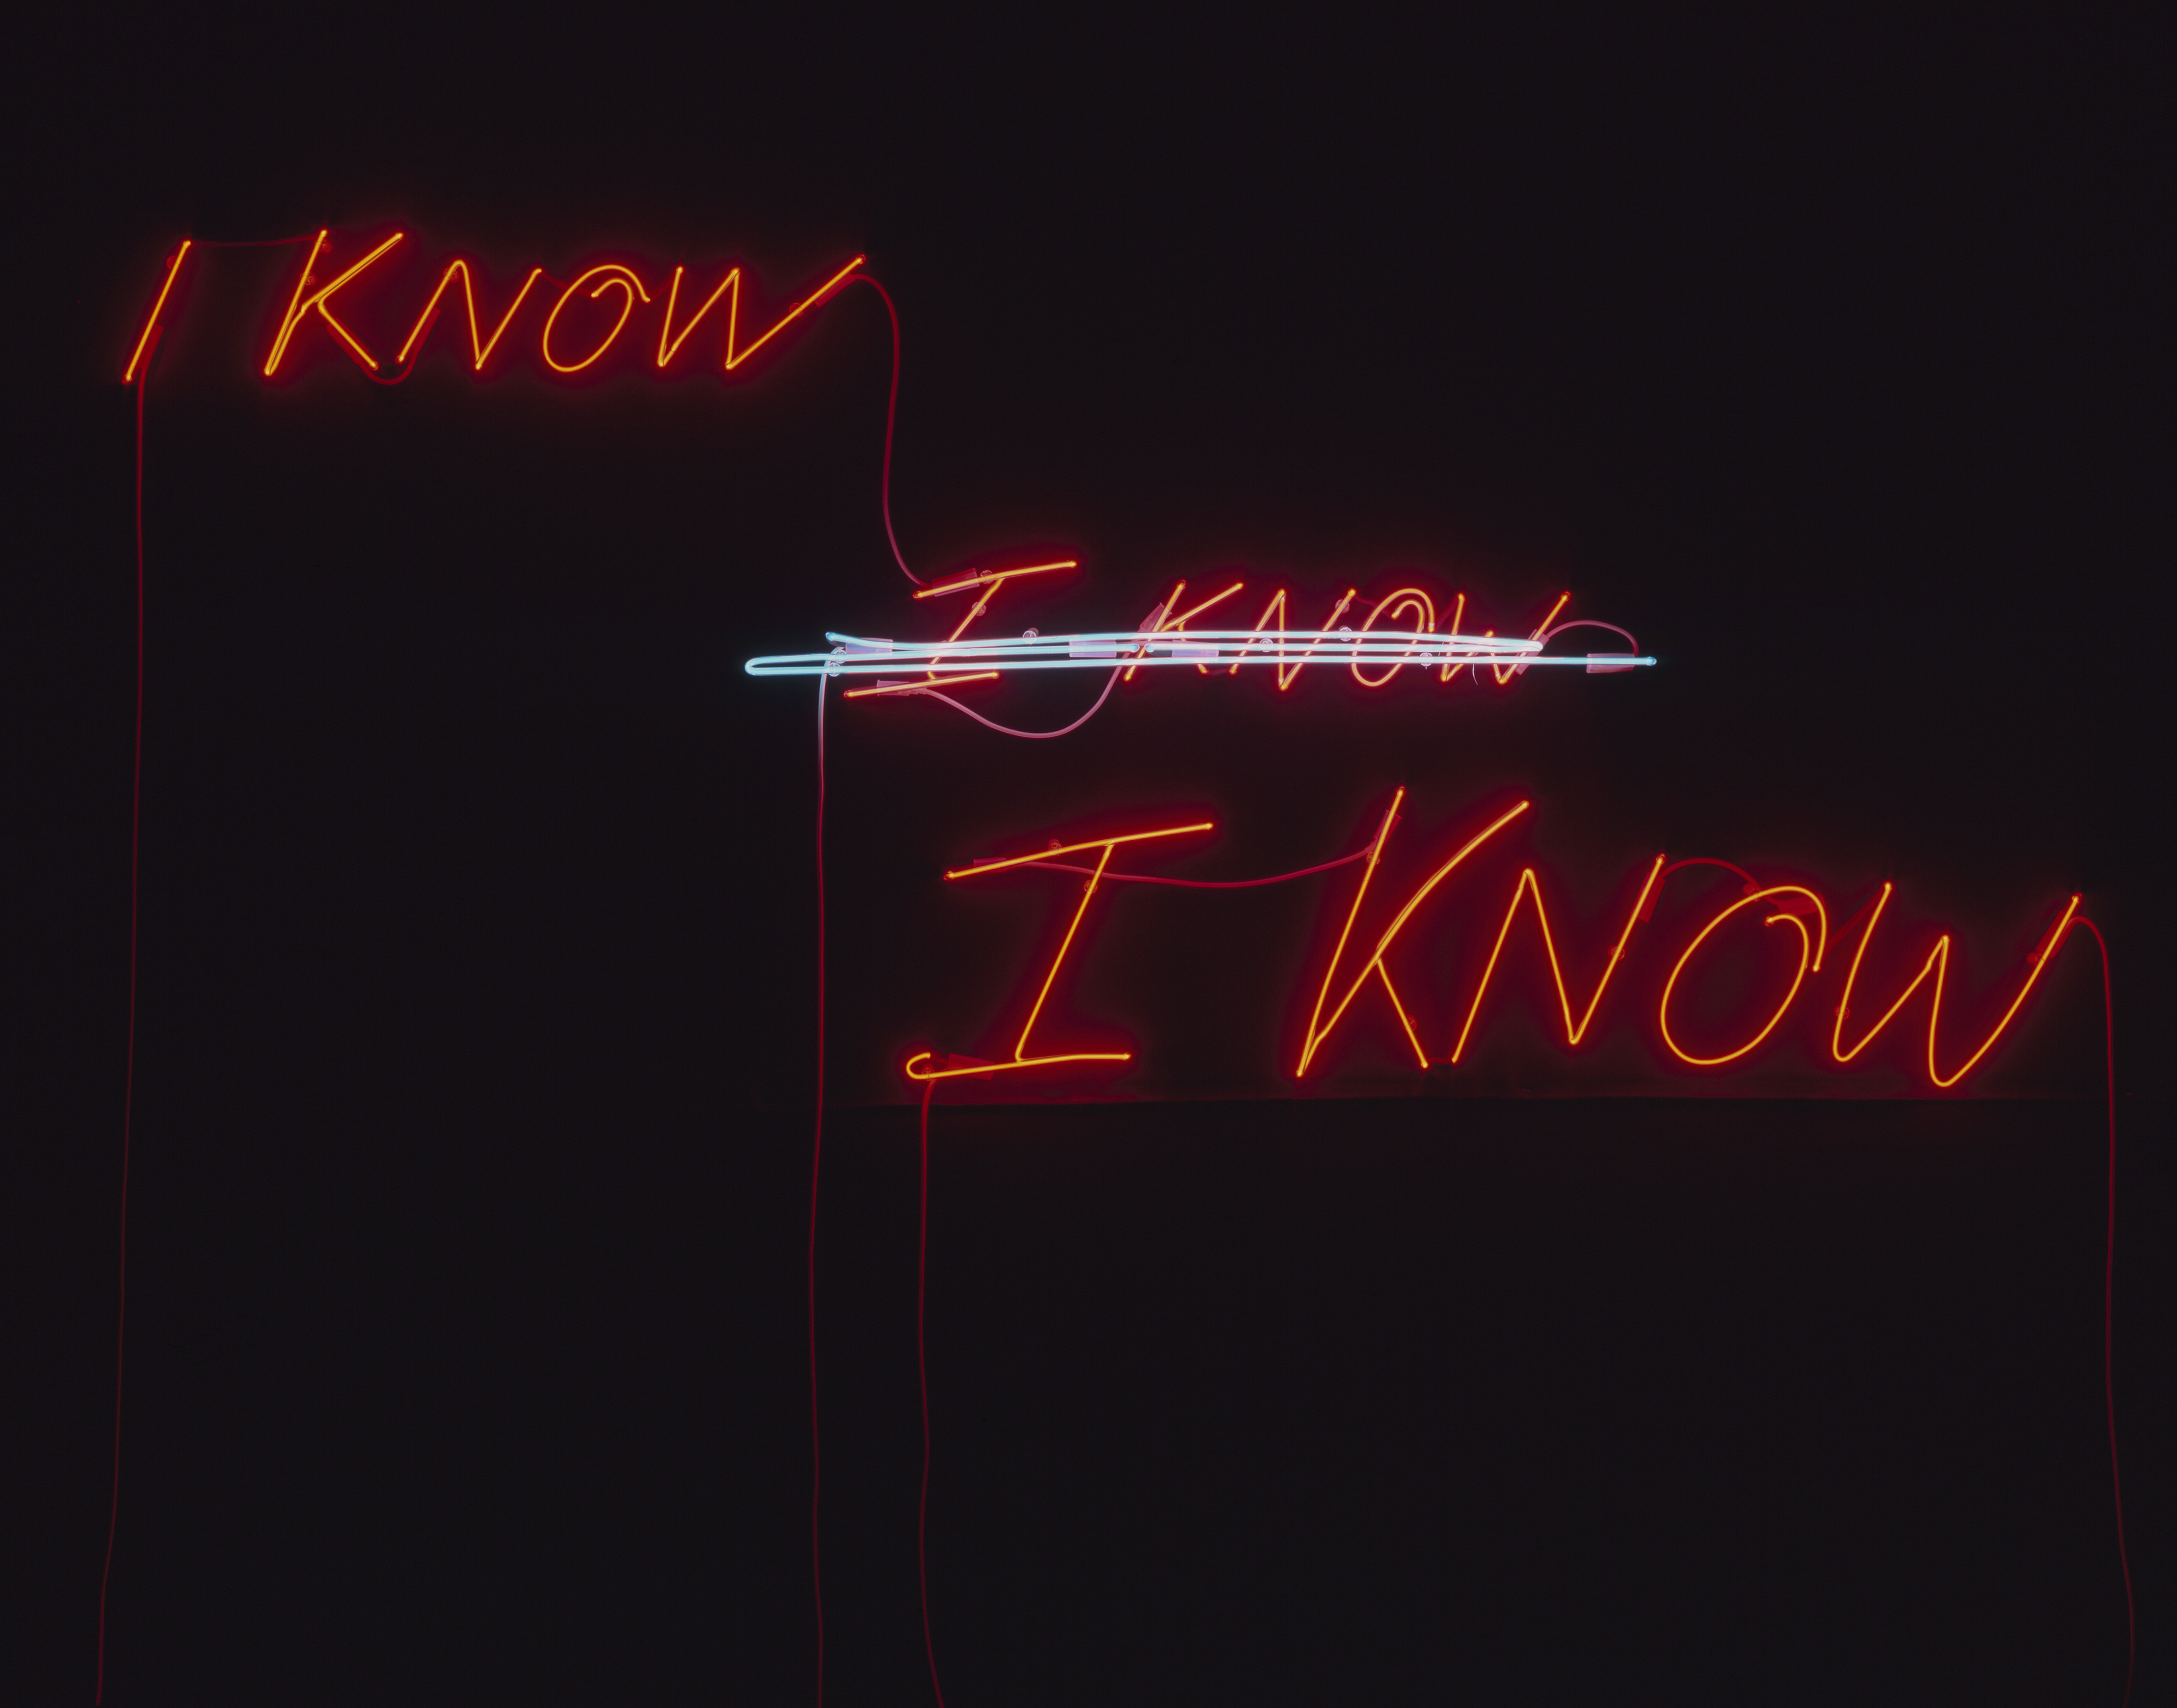 tracey-emin-i-know-i-know-i-know-2002-high-res